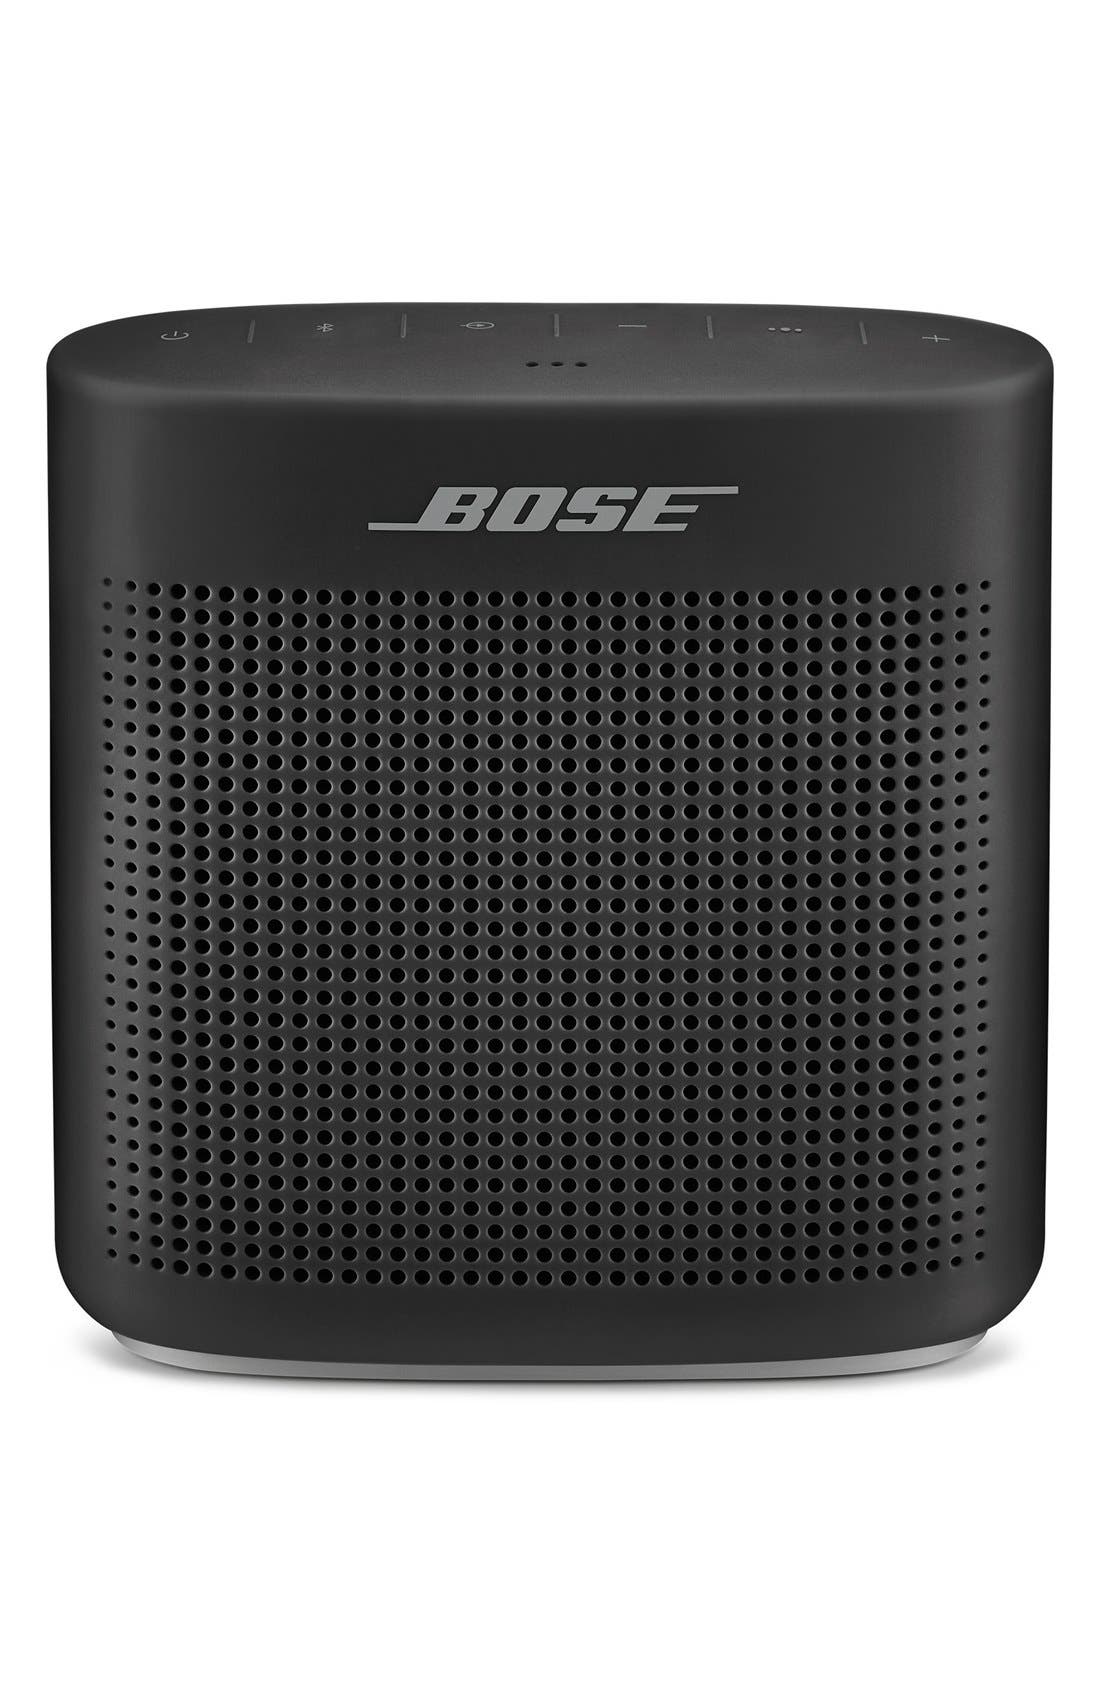 Main Image - Bose® SoundLink® Color Bluetooth® Speaker II